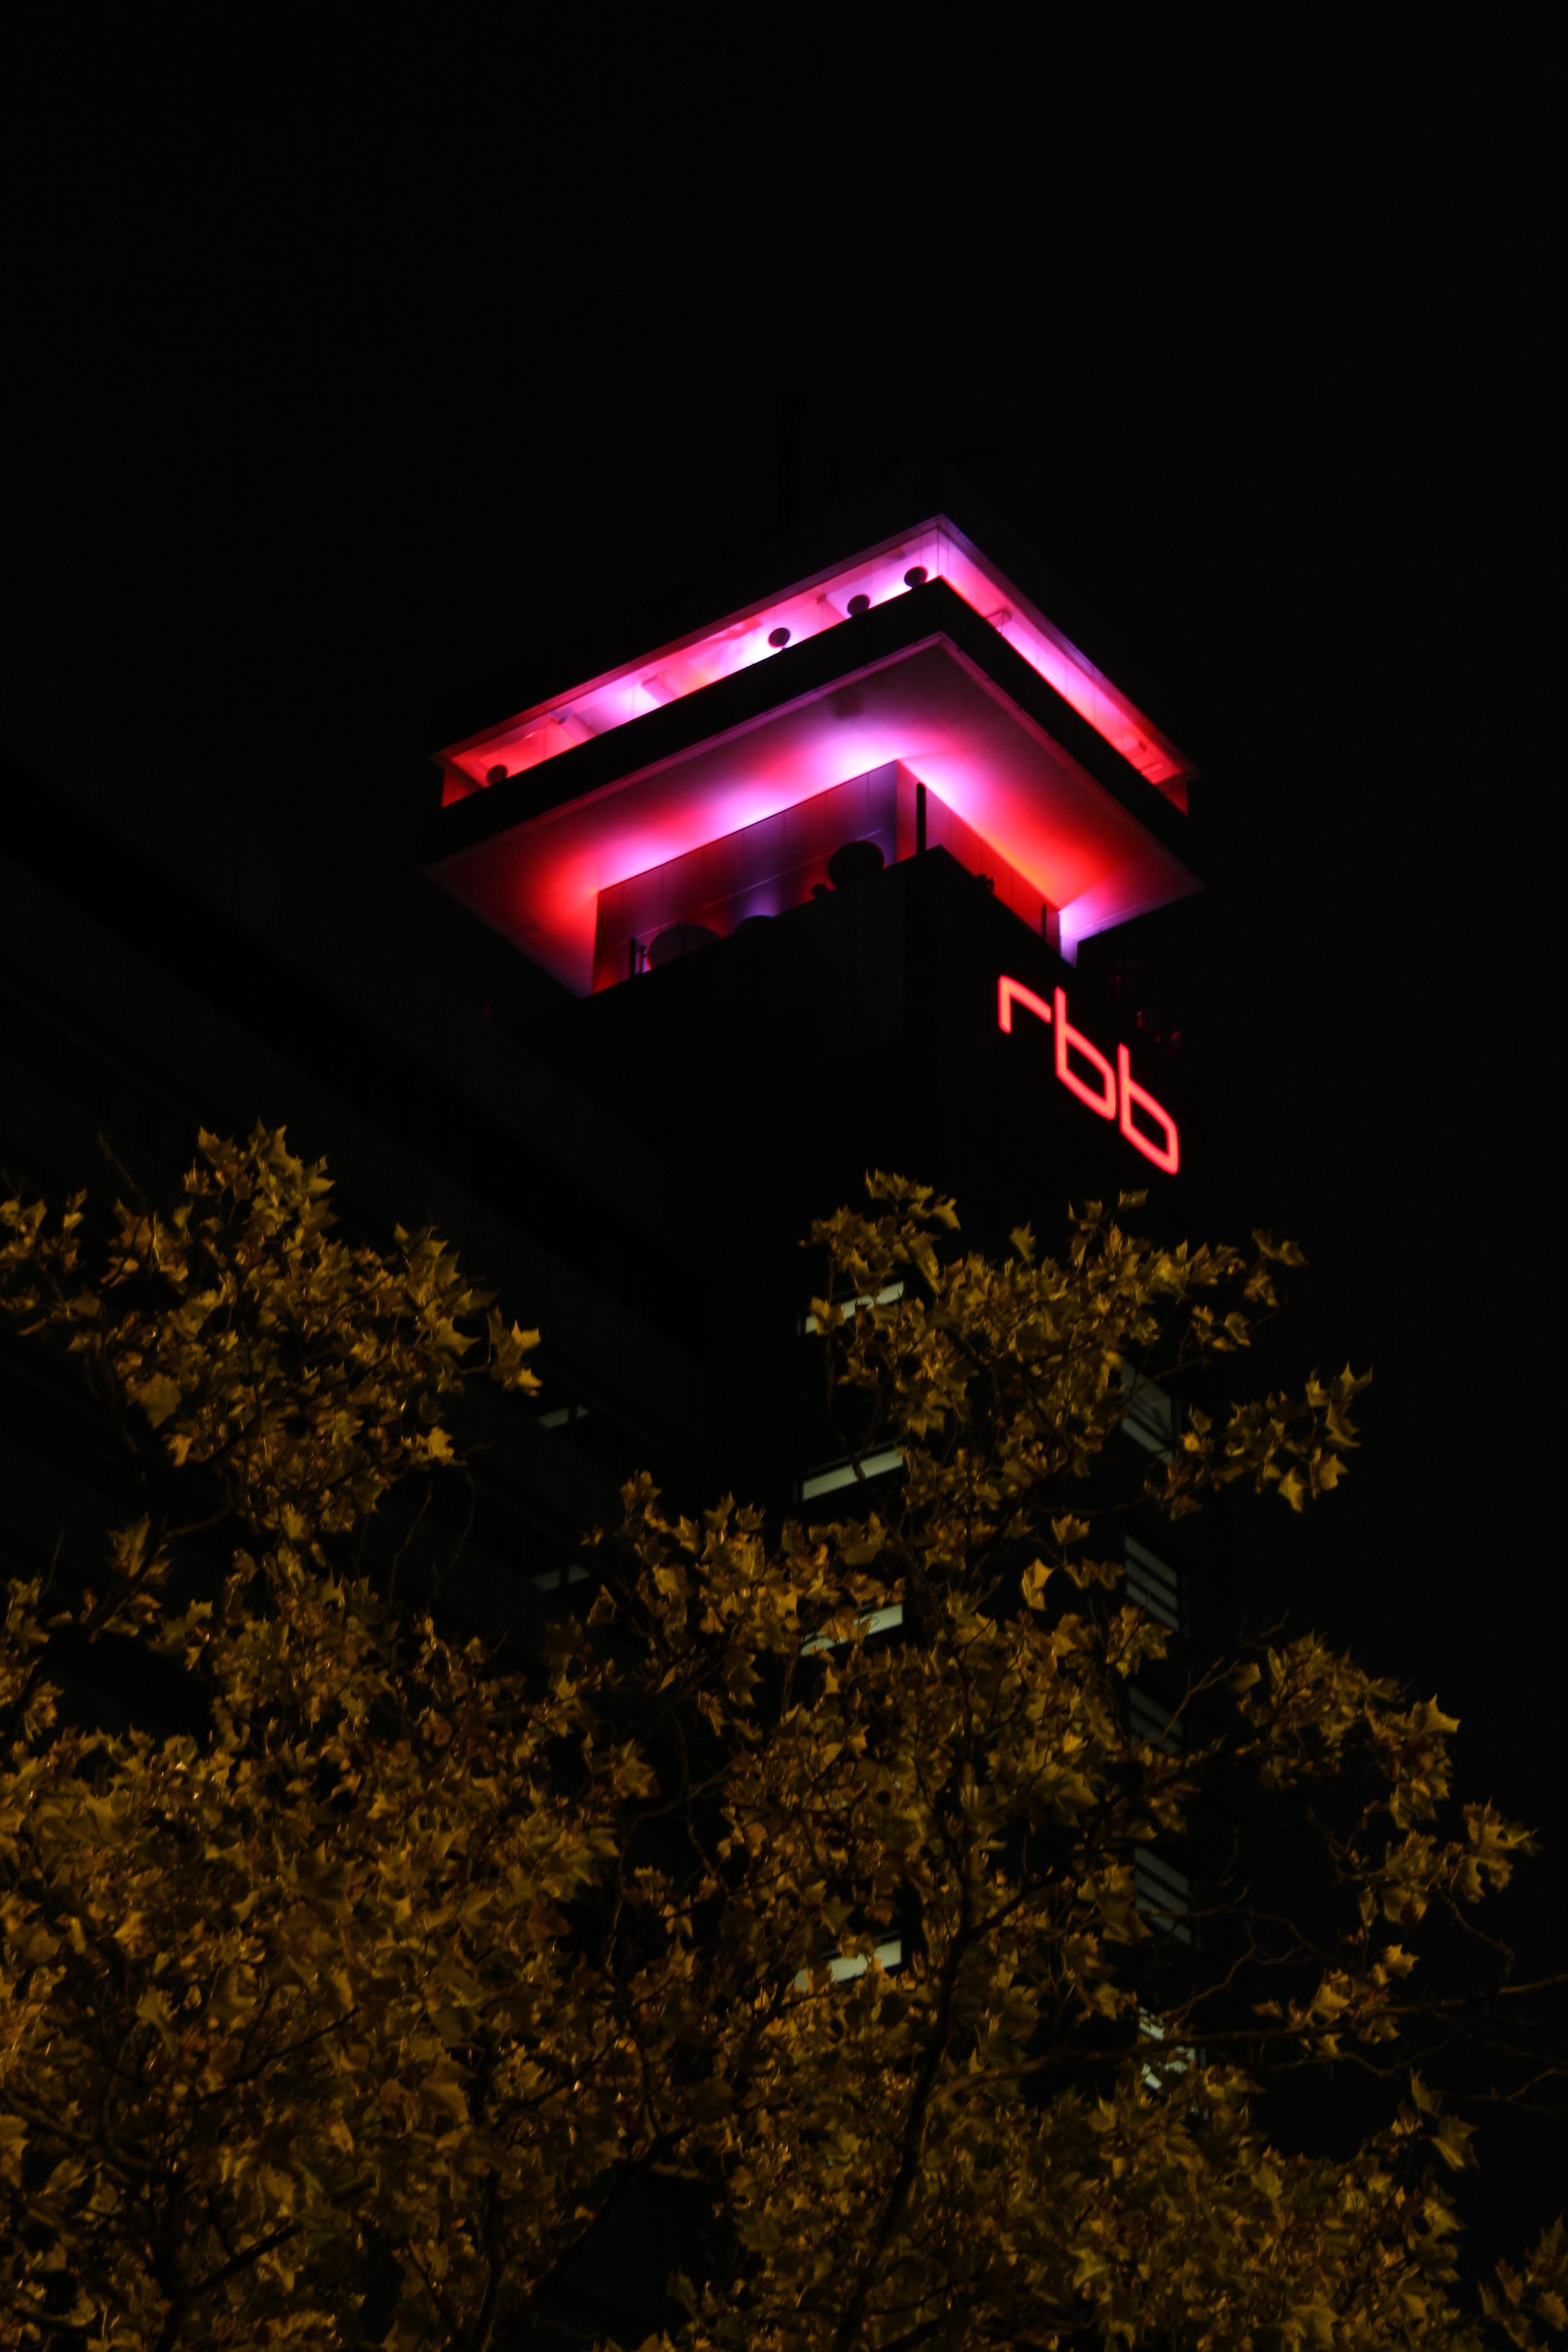 The roof terrace of the RBB (Rundfunk Berlin Brandenburg) building lit up during the Festival of Lights in Berlin